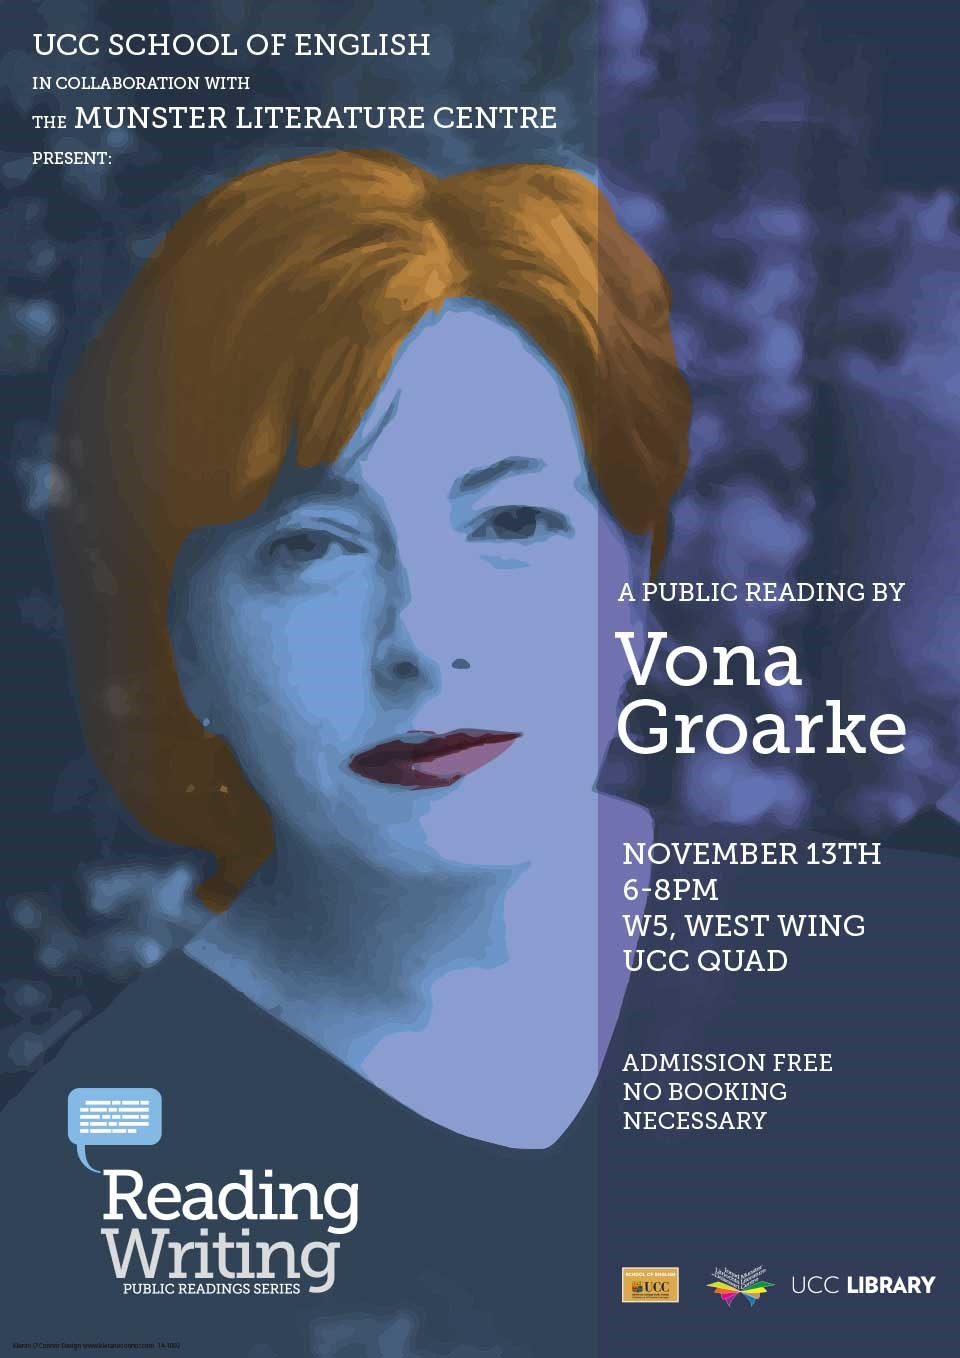 Vona Groarke: Public Reading